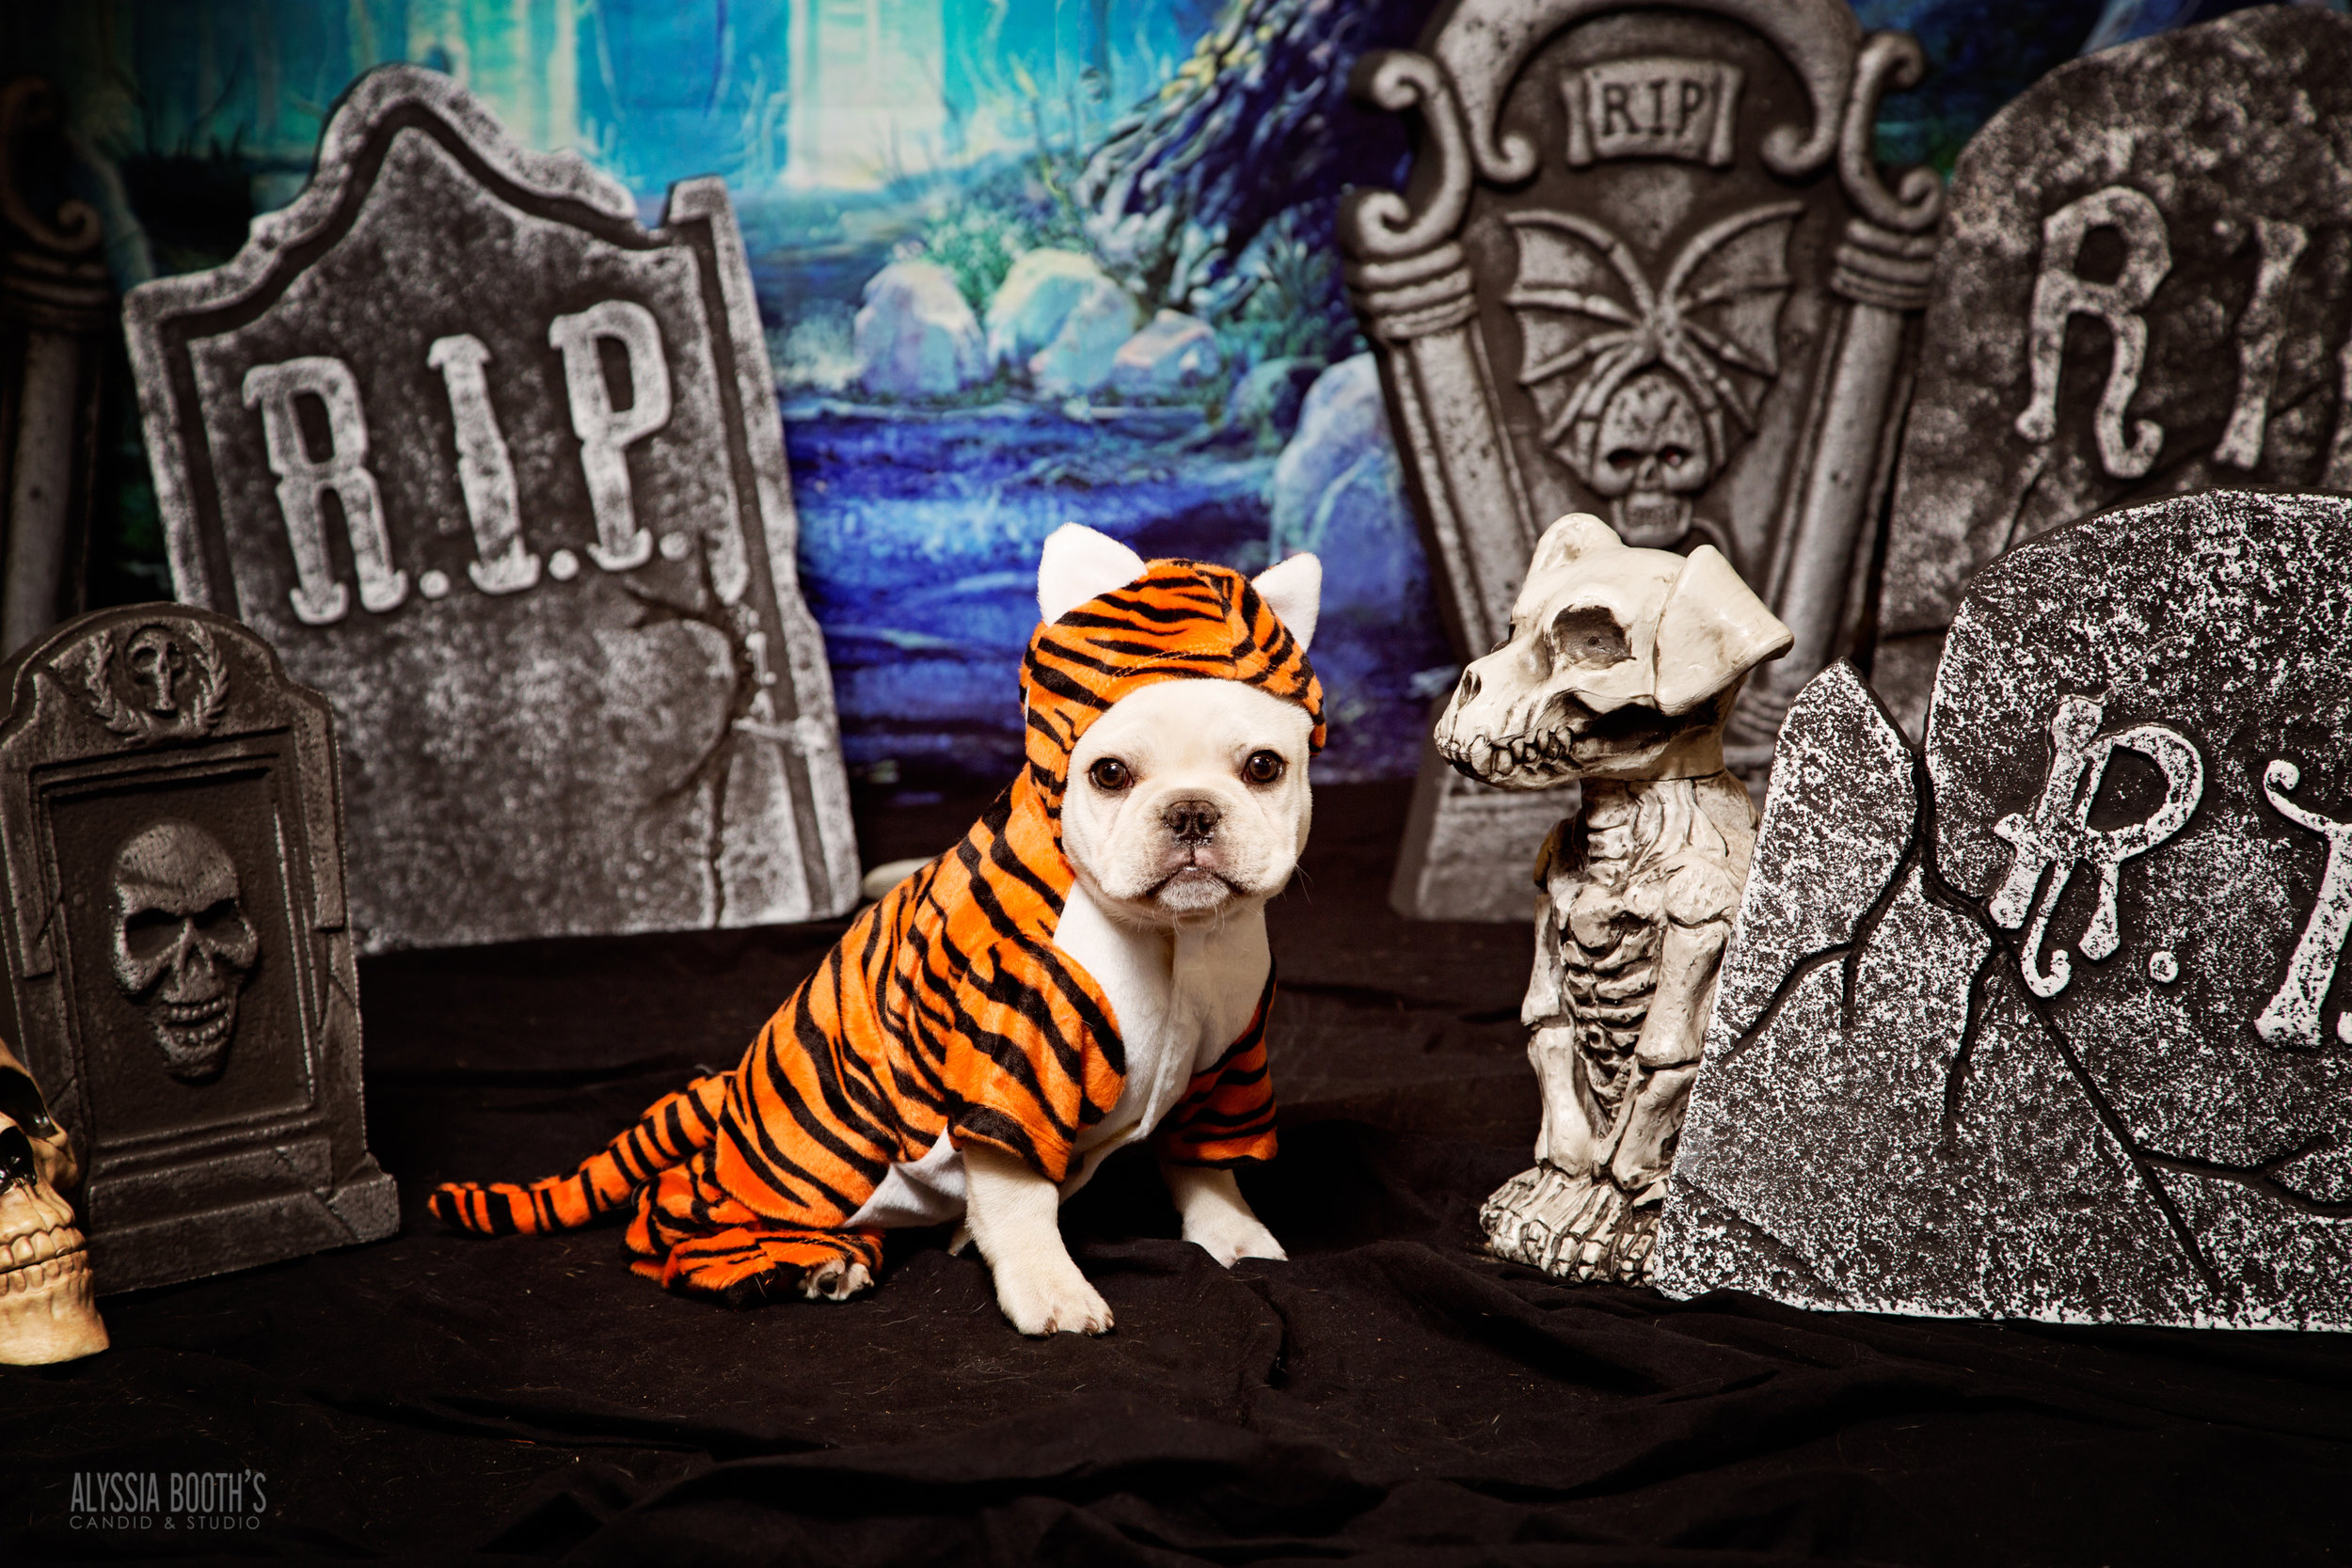 Frenchie Puppy | Tiger Puppy Costume | Halloween Pets |  www.abcandidstudio.com | Alyssia Booth's Candid & Studio | Michigan Pet Photographer